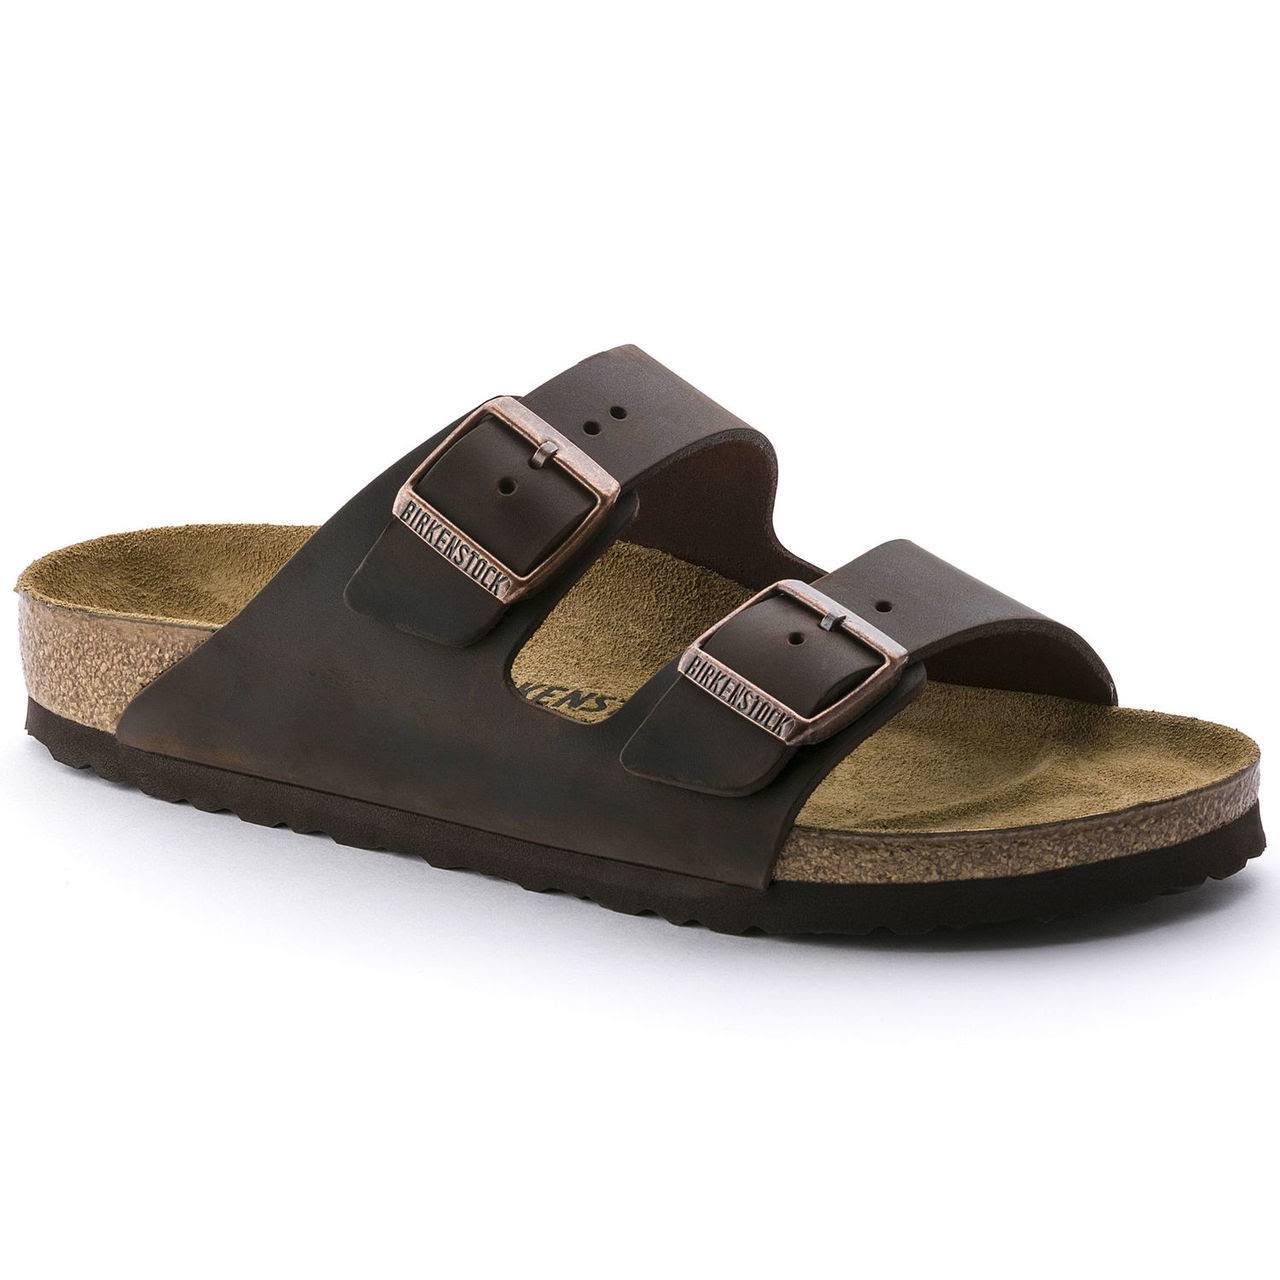 Birkenstock Unisex Arizona Sandal - Habana Oiled Leather, Size 44 EU